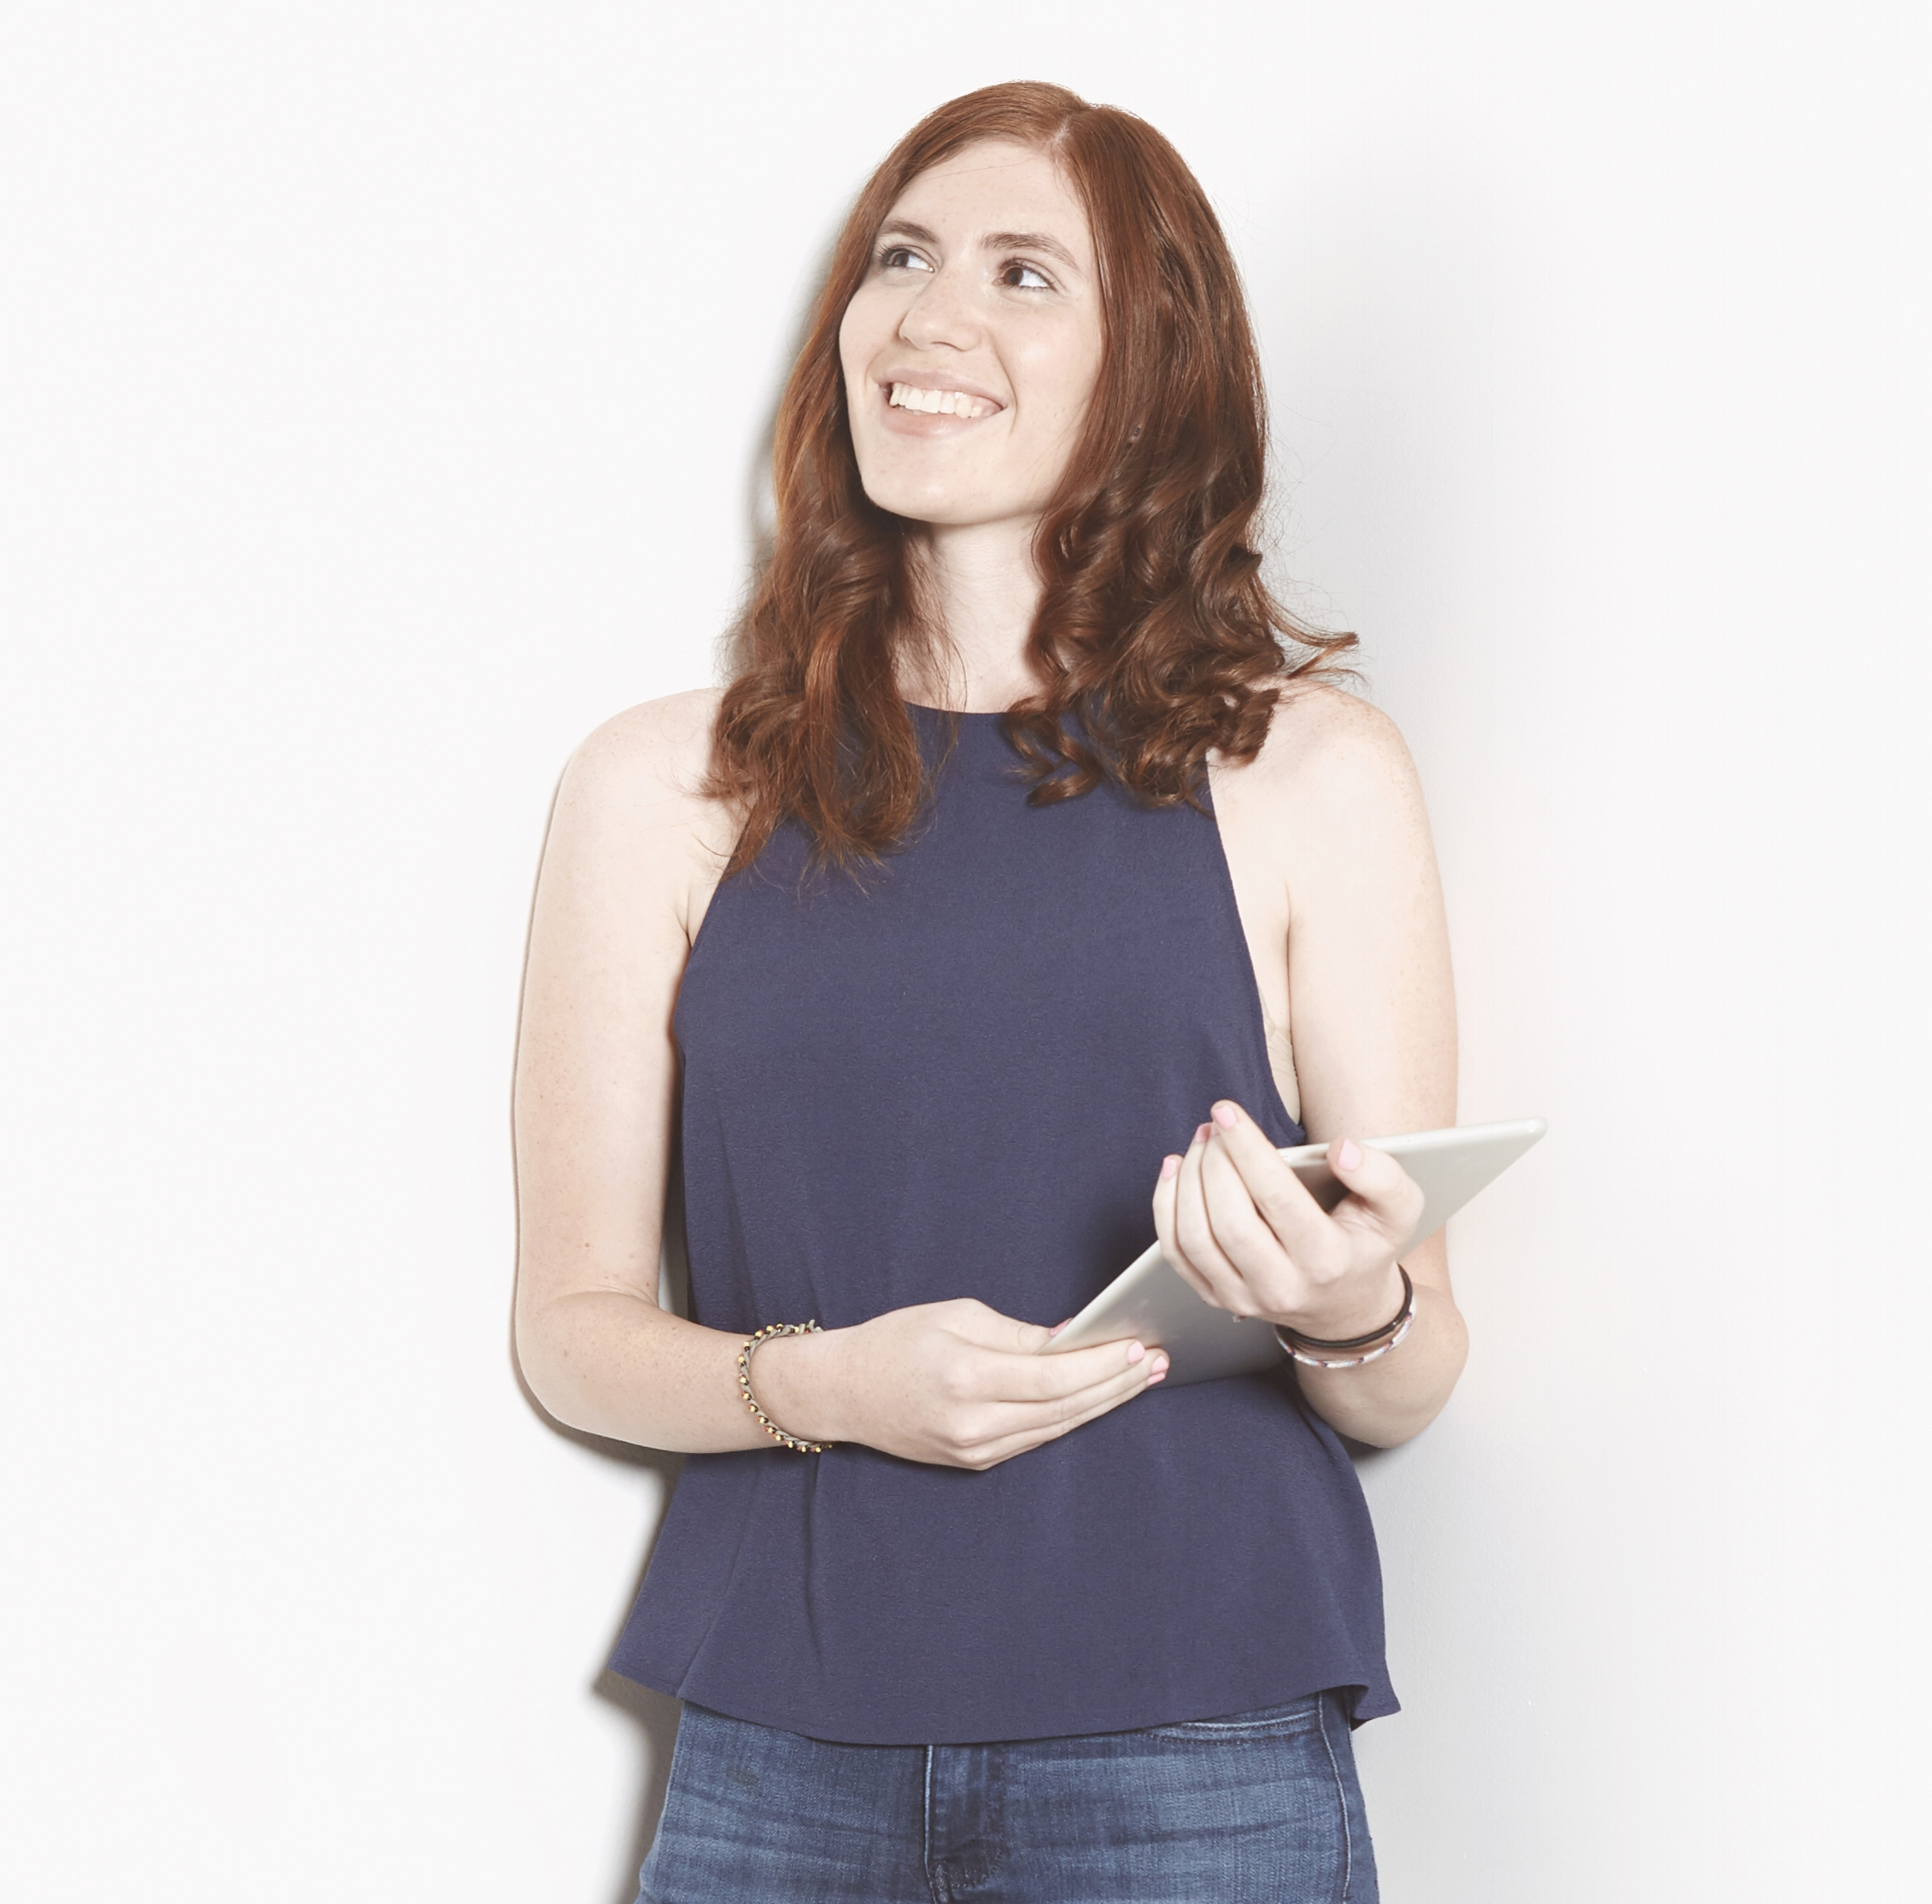 Zoe Sailer is the Money Mentor National Director of User Experience. Zoe is a student at   Baruch College - The City University of New York (CUNY)    through the    Macaulay Honors College at the The City University of New York (CUNY).